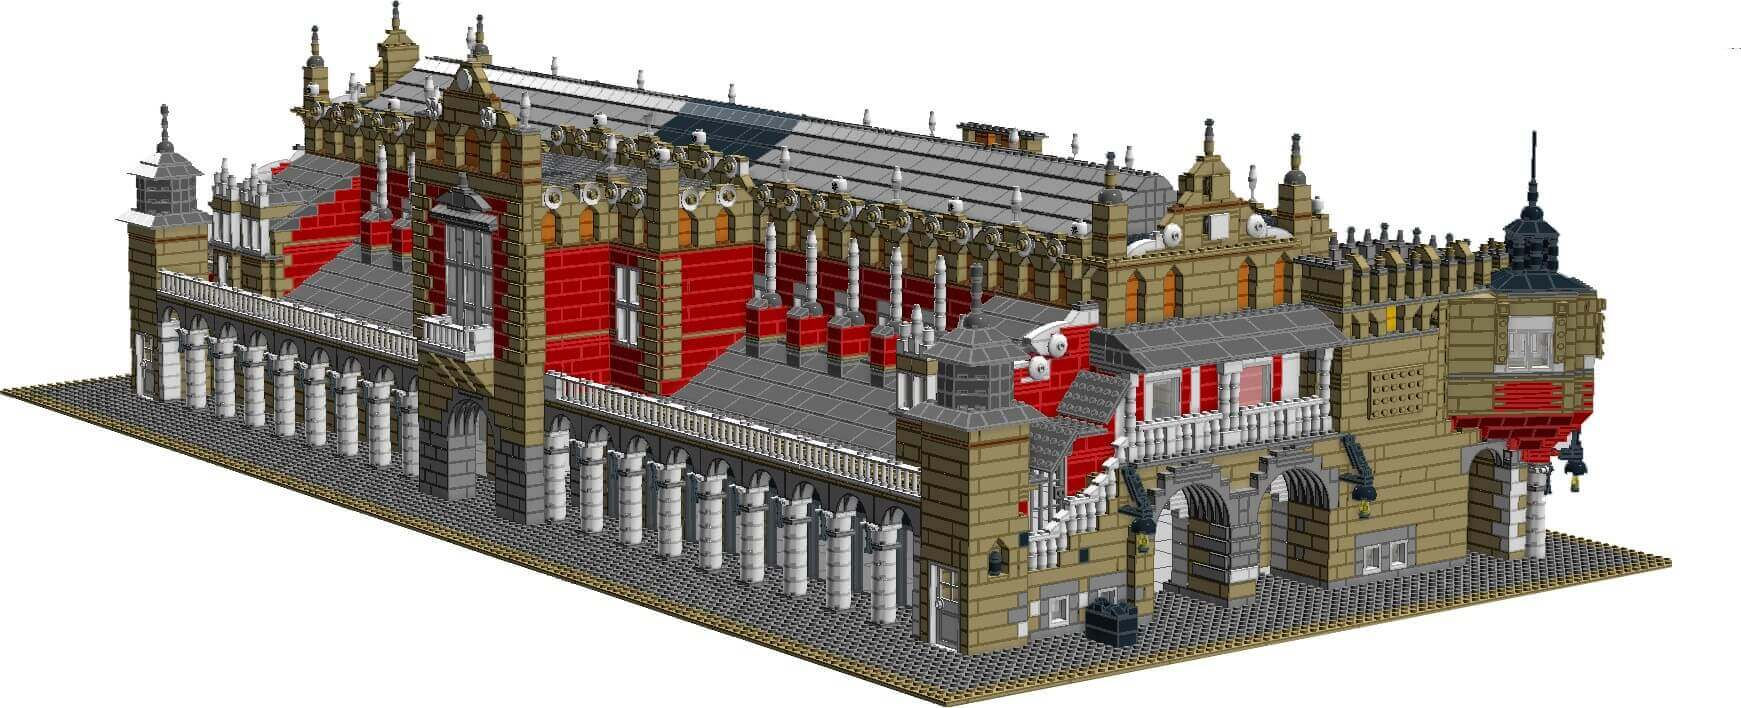 lego-advanced-lego-for-adults-model-made-of-lego-blocks-on-request-by-Matthew-Kustra.jpg